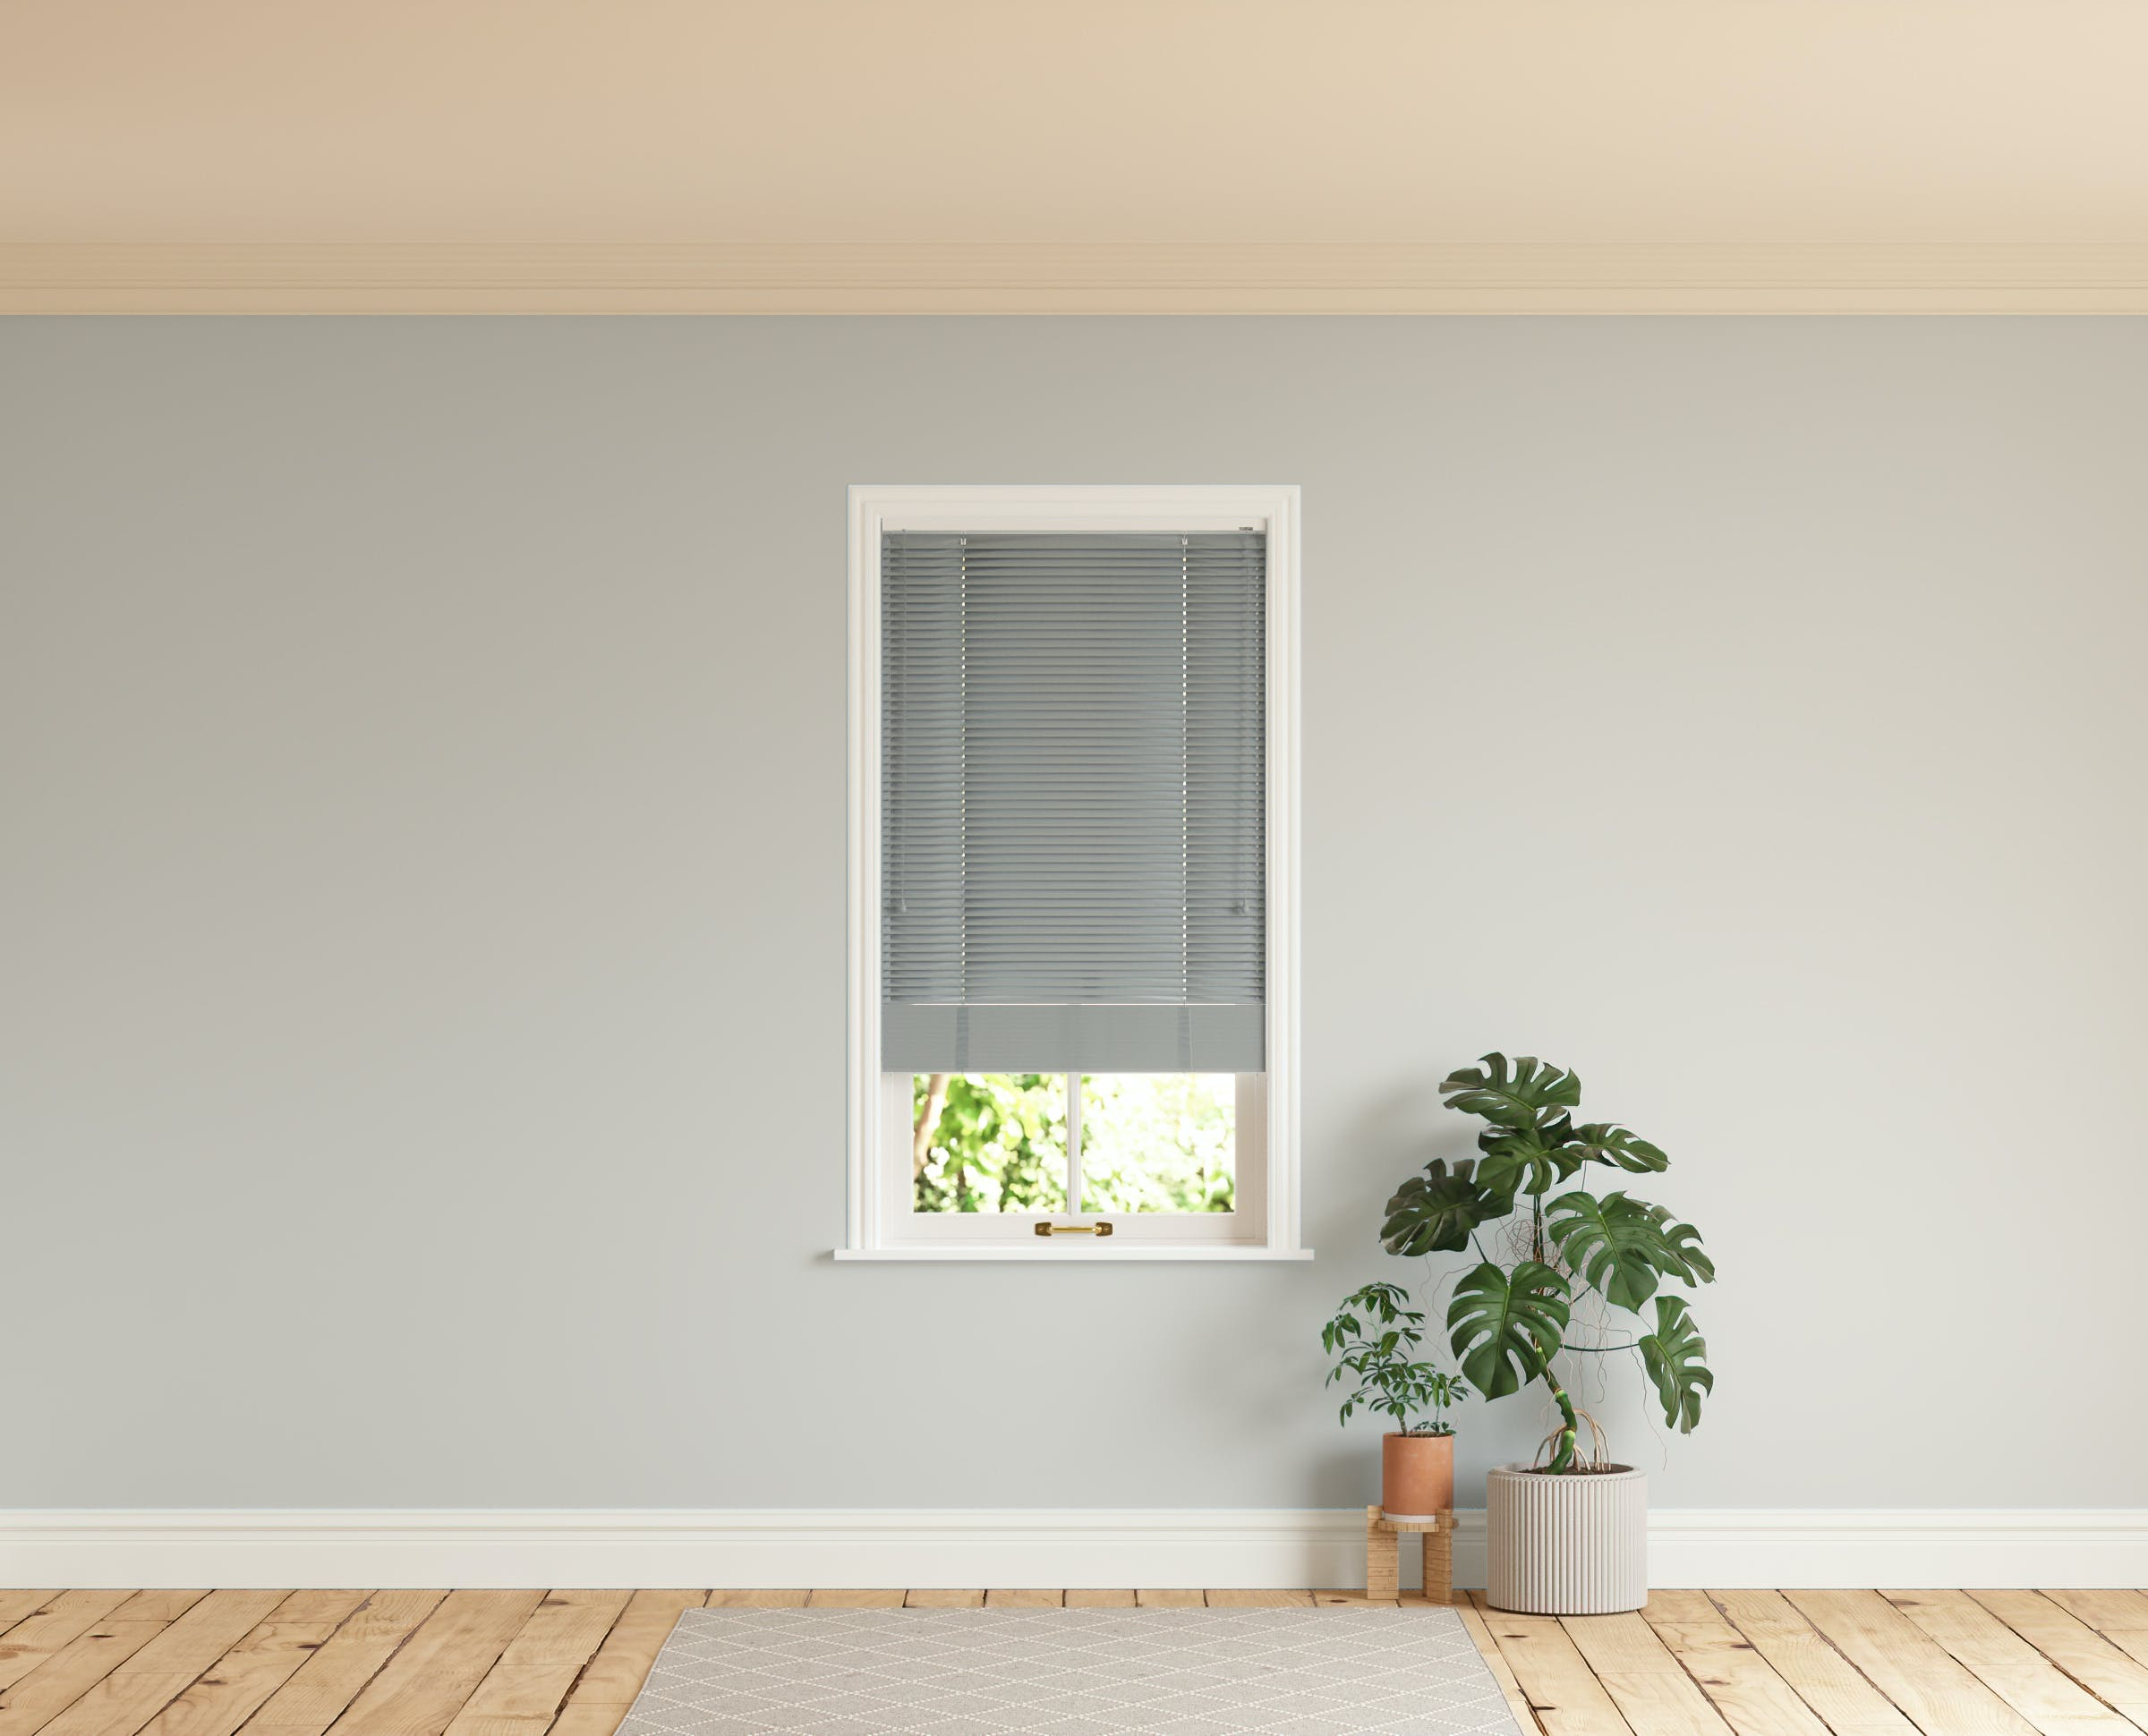 Room with walls painted in Lick Grey 03 and Grey 06 Venetian blinds